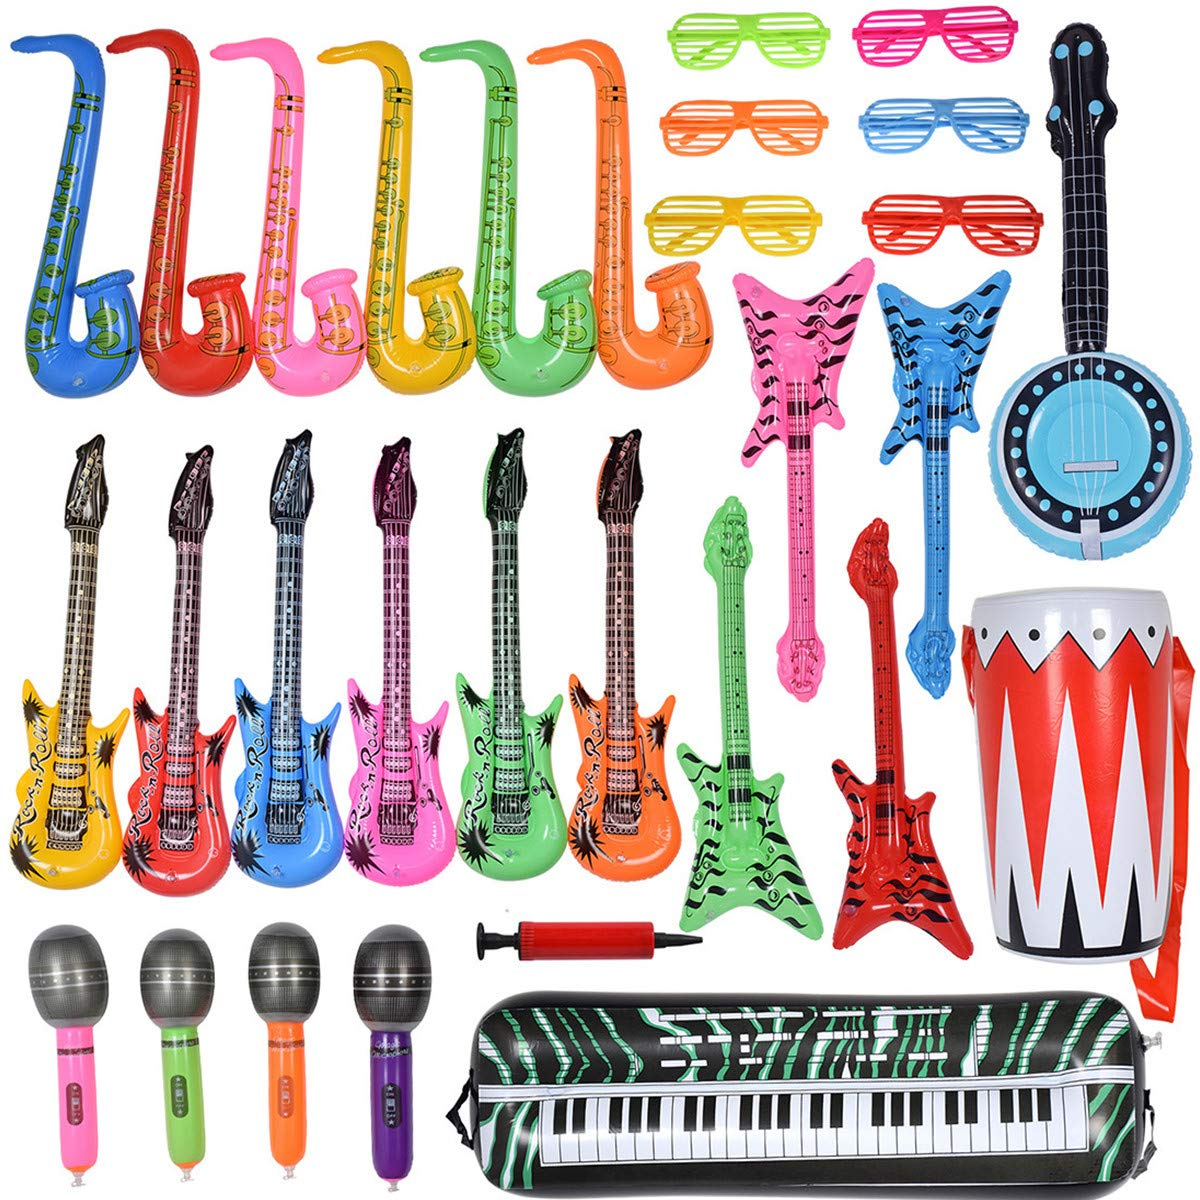 Max Fun Inflatable Rock Star Toy Set, 30 PCS Random Color Inflatable Party Props Musical Instrument Inflate Rock Band Assortment for Concert Theme Party Favors Rock and Roll Party Supplies by Max Fun